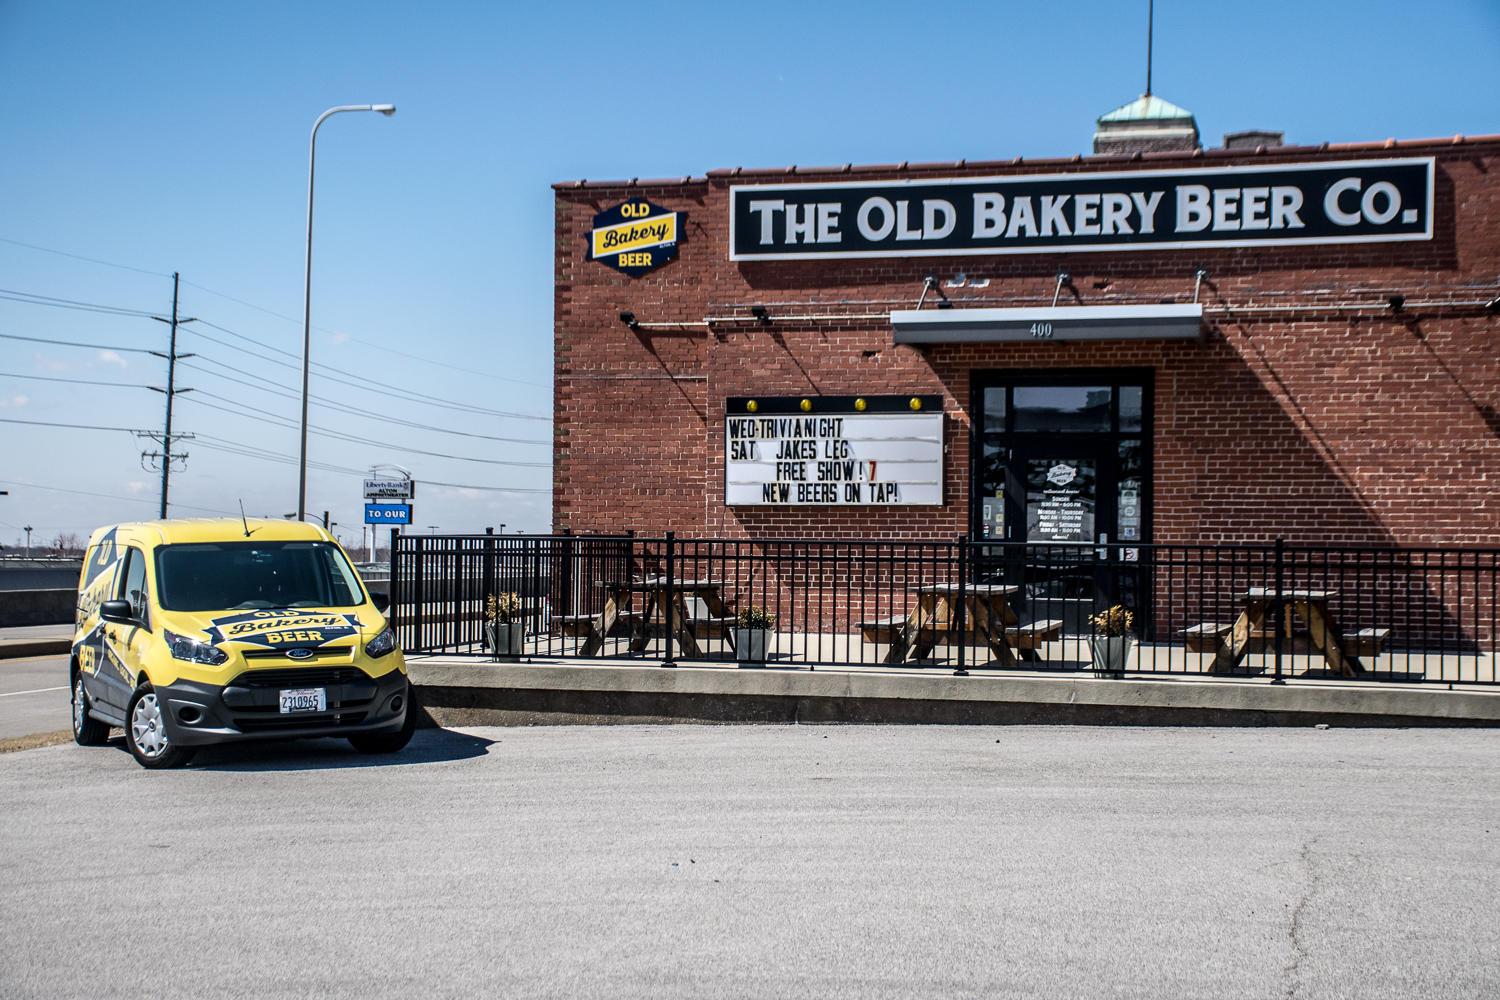 Altons Small Business Revolution Began Before Hulu Started Lincoln Town Car Tattoo The Old Bakery Beer Co Found A Niche Market In Organic Certified Beers After Opening 2015 Brewery Produced About 1300 Barrels Last Year